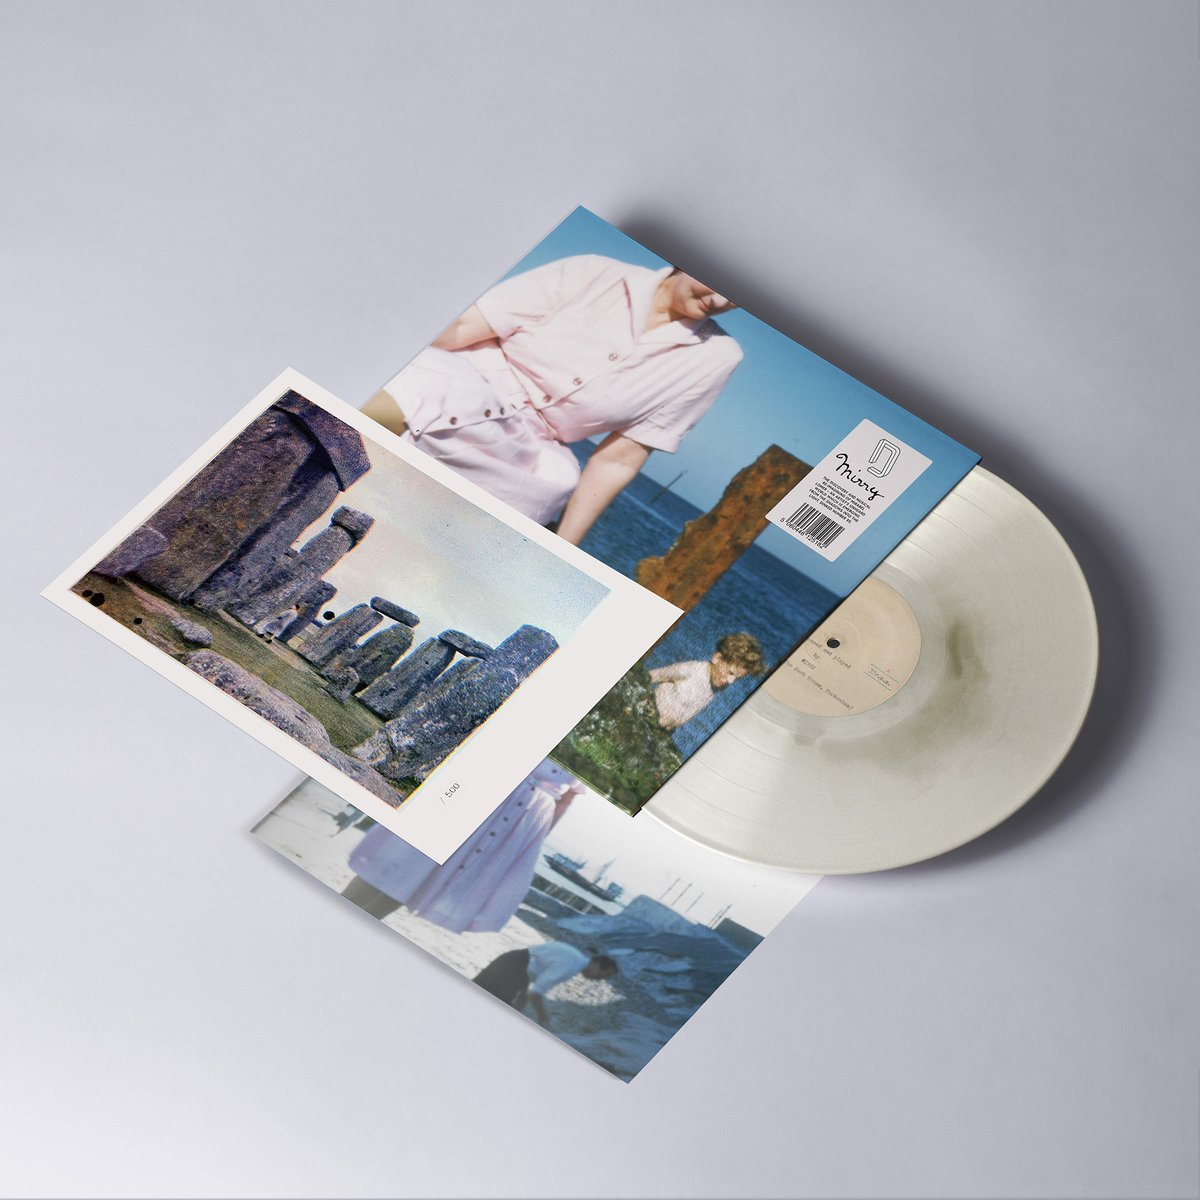 REVIEW: Mirry by Mirry The secret piano recordings of a late relative are brought to life with ornate embellishments on this gorgeous, invitingly warm, memory invoking & moving concept record from Tom Fraser & Simon Tong. 8/10 normanrecords.com/records/184755…